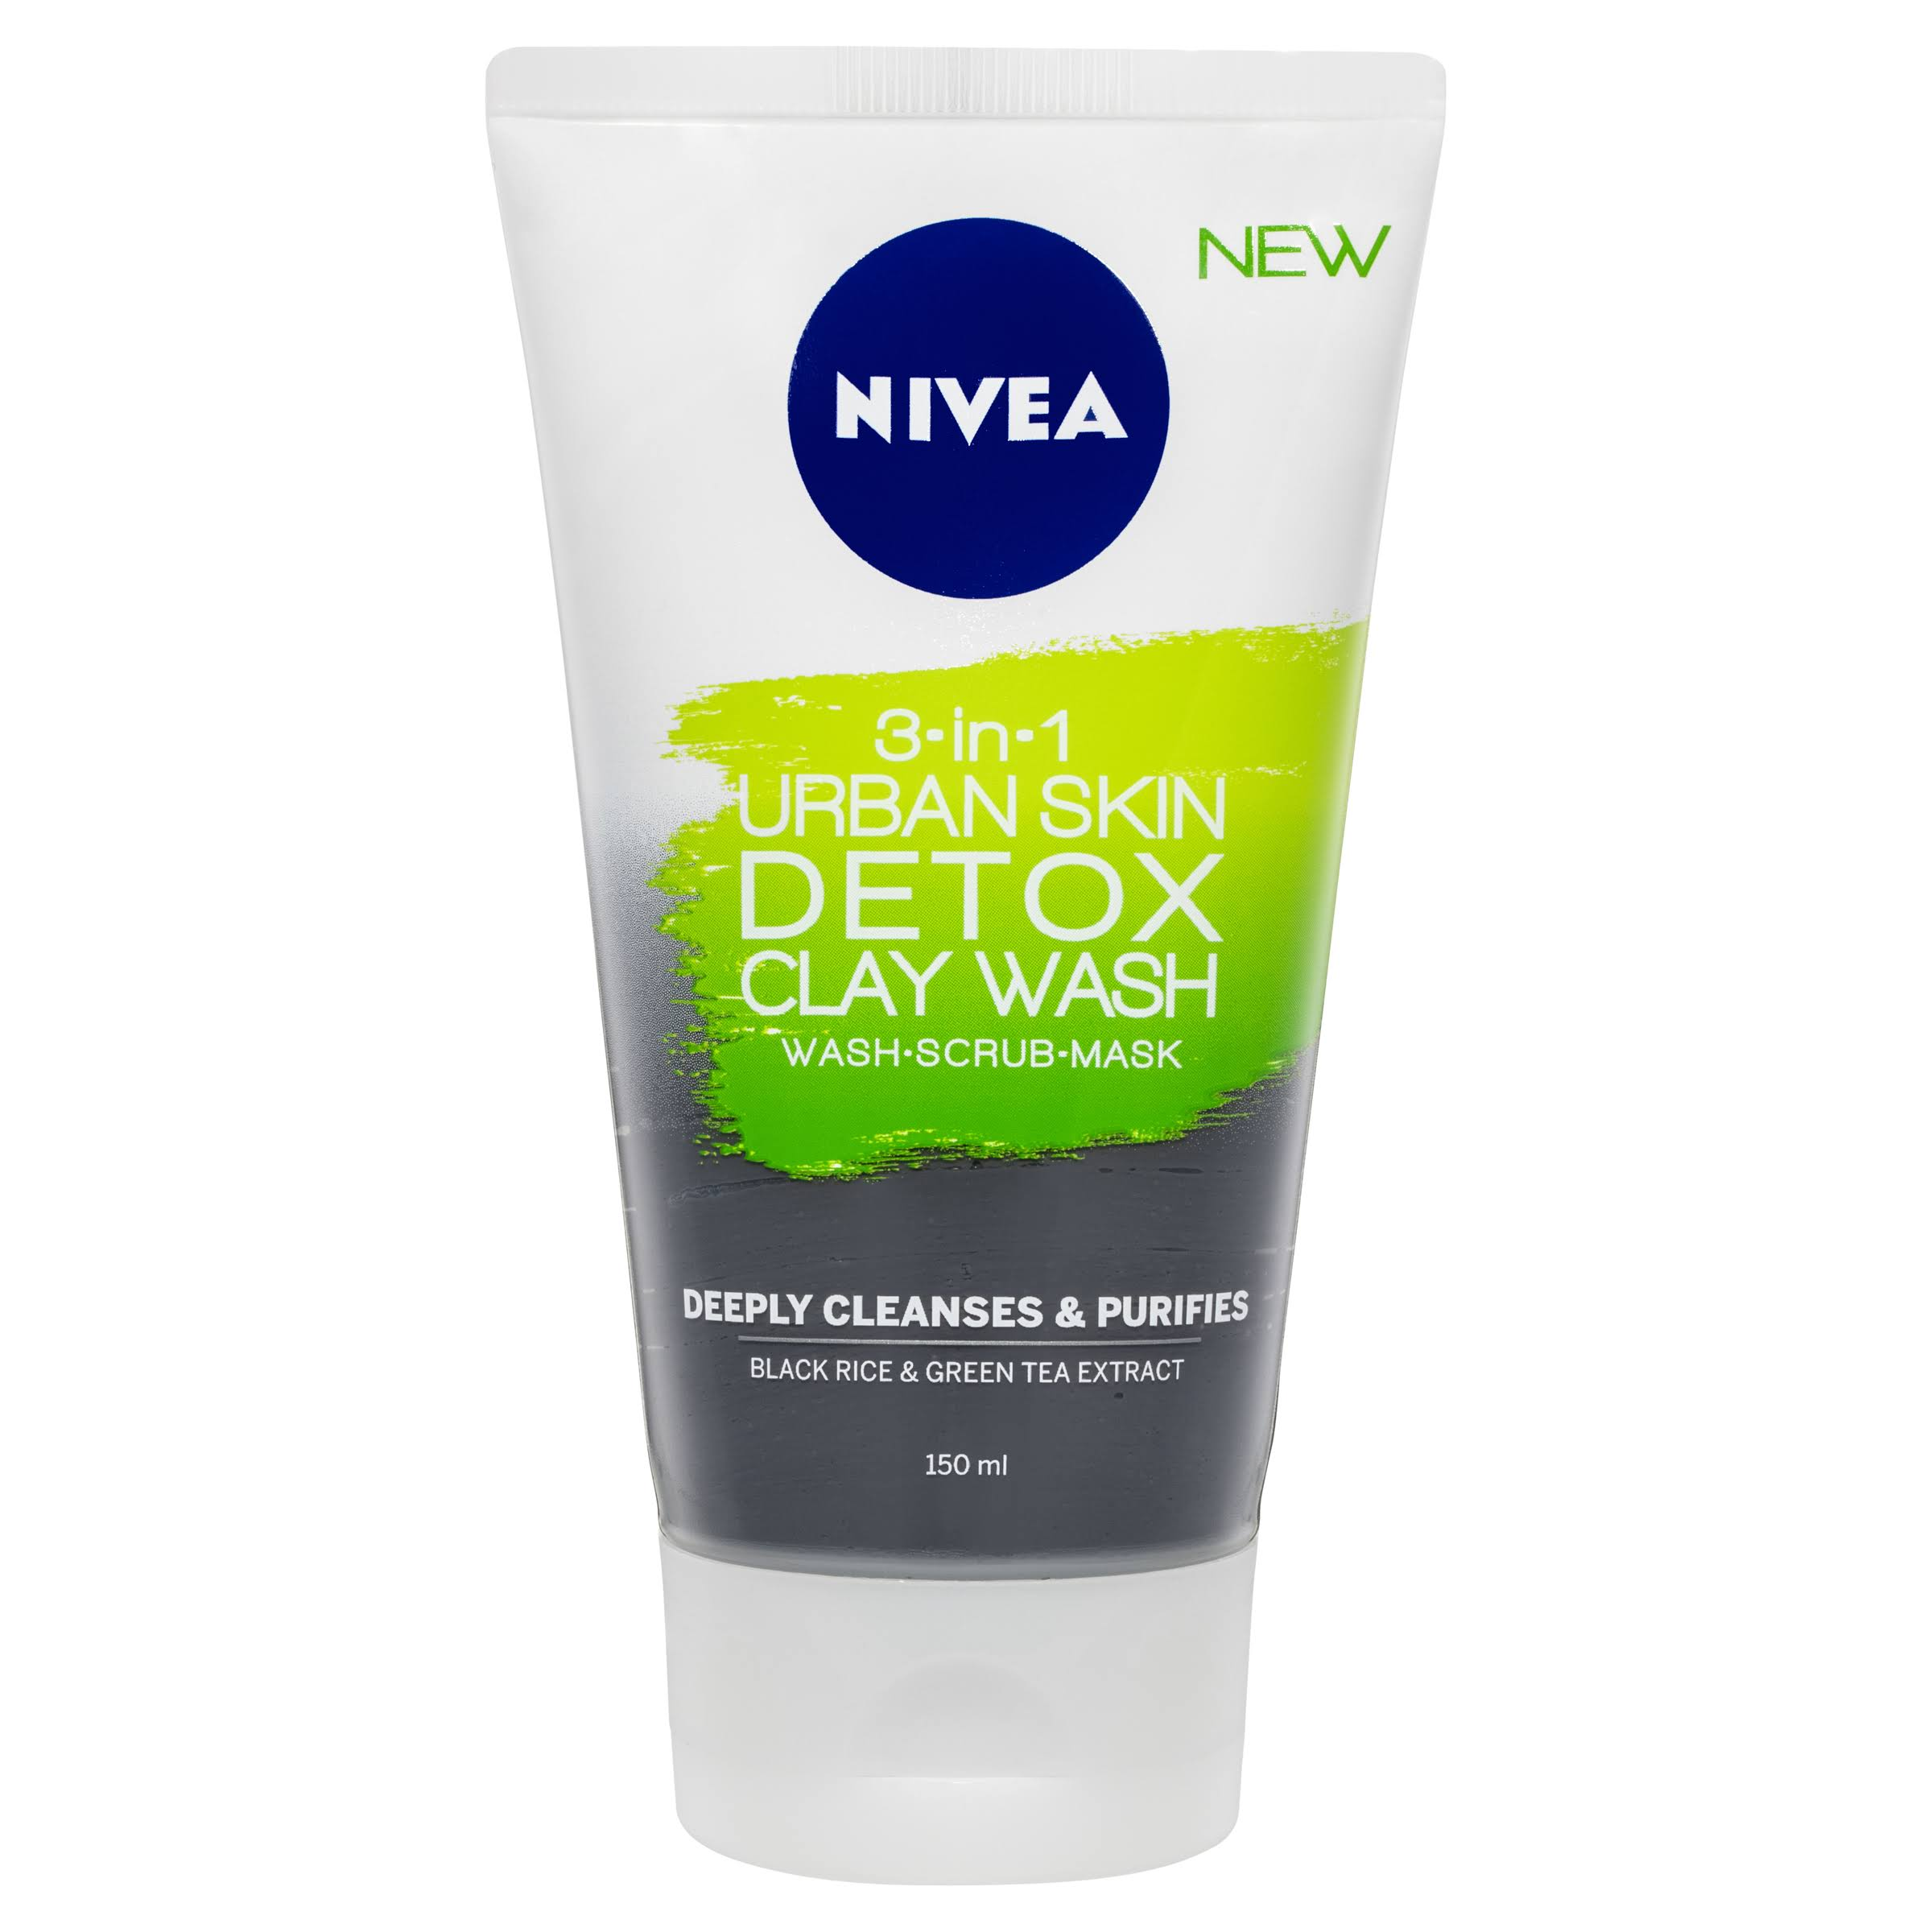 Nivea 3-in-1 Urban Skin Detox Clay Wash - 150ml